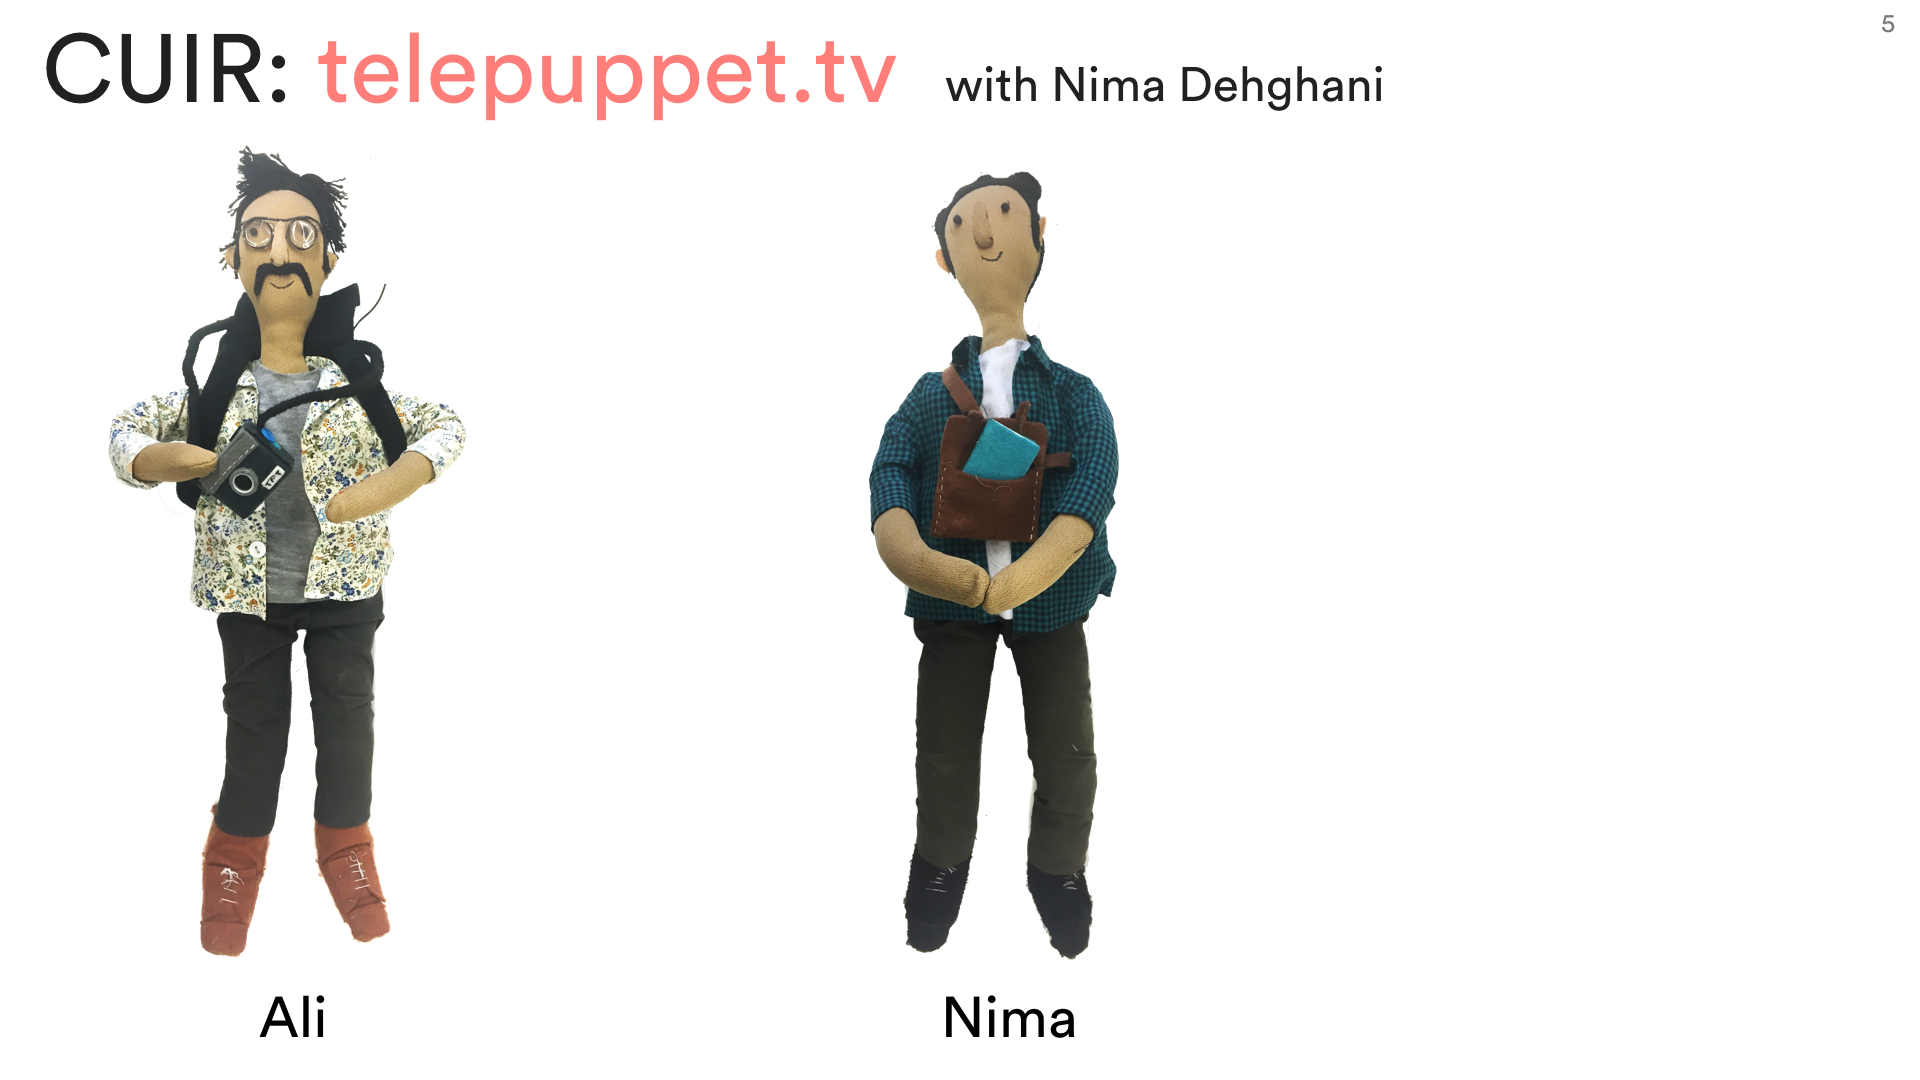 A puppet for Ali and another for Nima